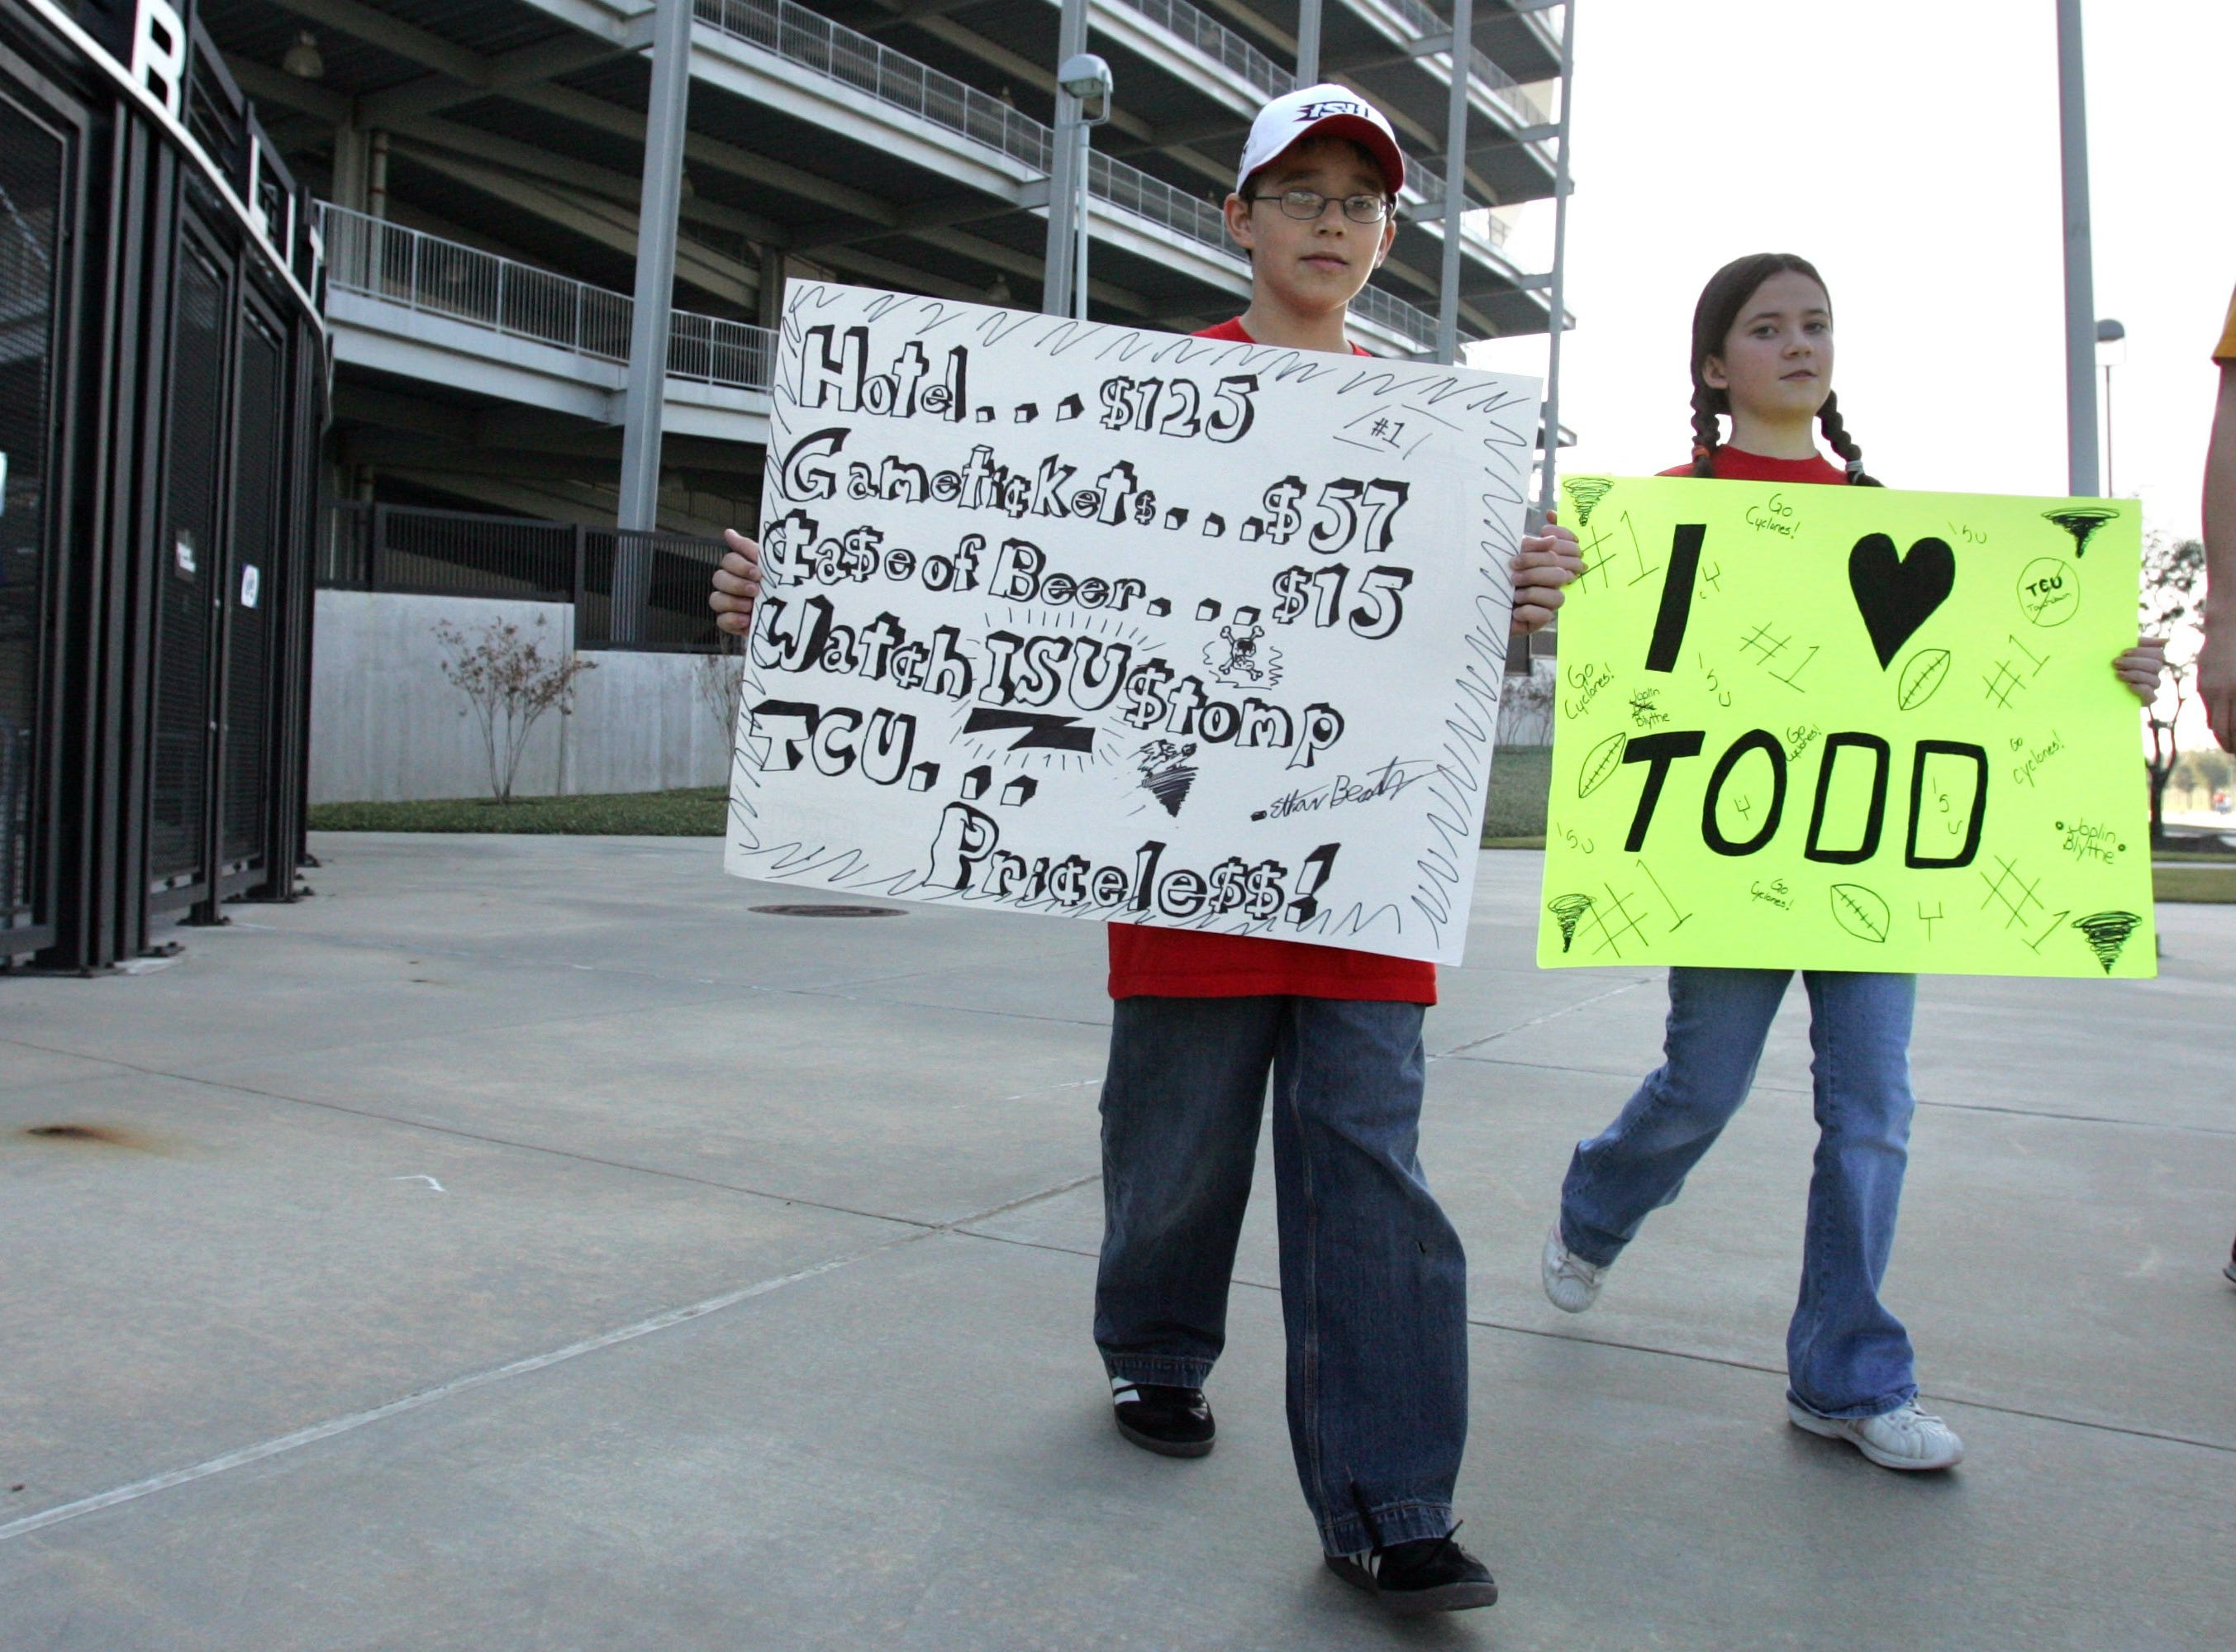 Ethan Beatty, 12, of Keller, Texas, and Joplin Bittle, 12, of Ogden display their Cyclone pride in the parking lot prior to the 2005 Houston Bowl.